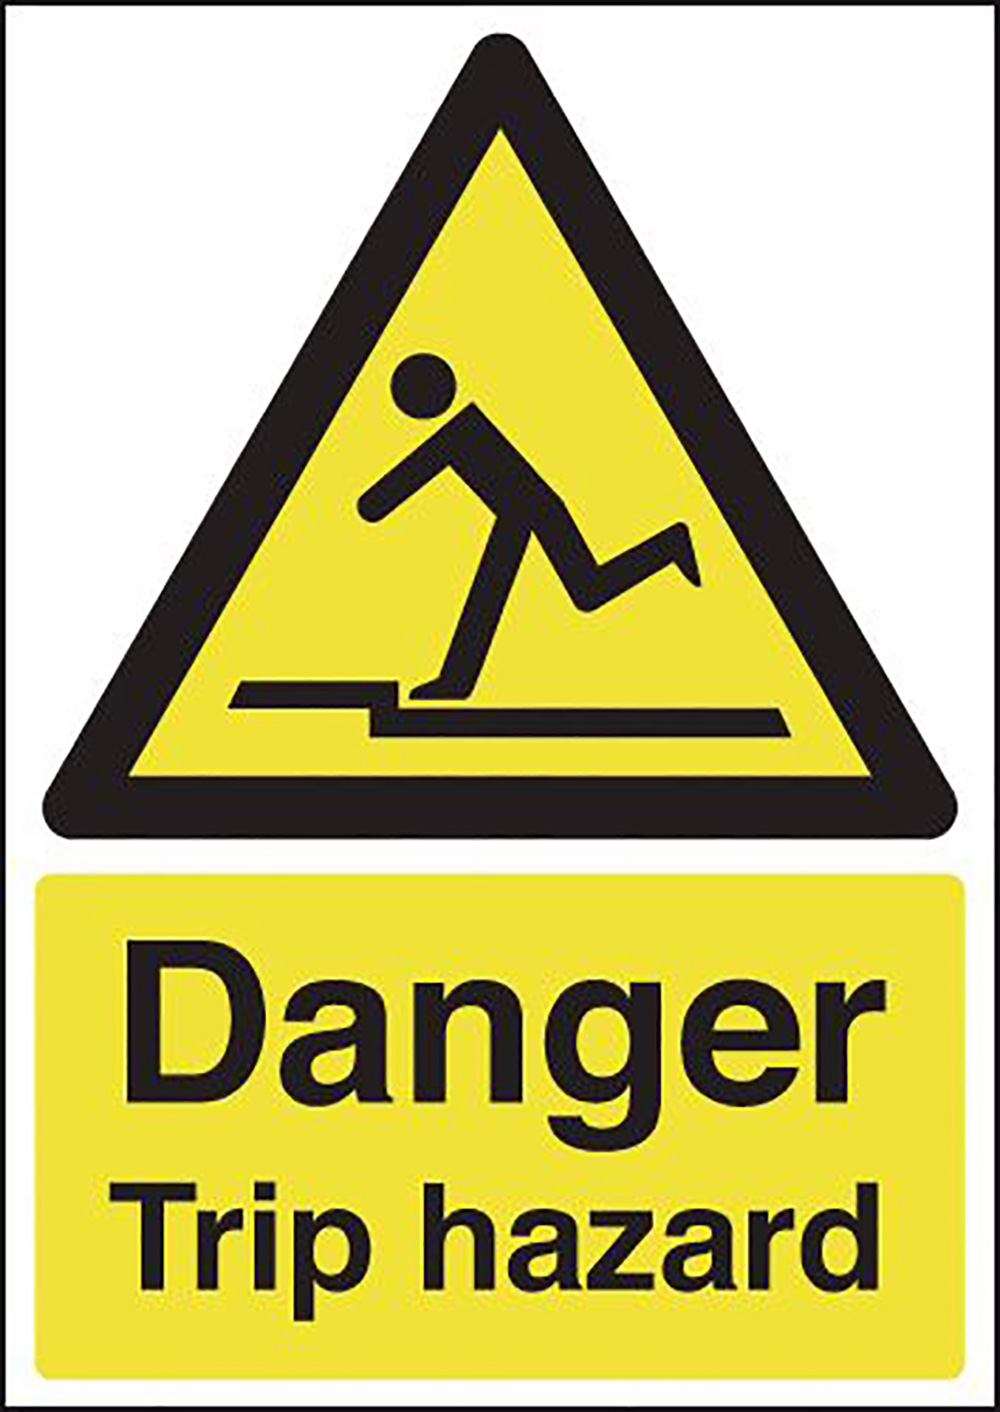 Danger Trip Hazard 210x148mm 1.2mm Rigid Plastic Safety Sign